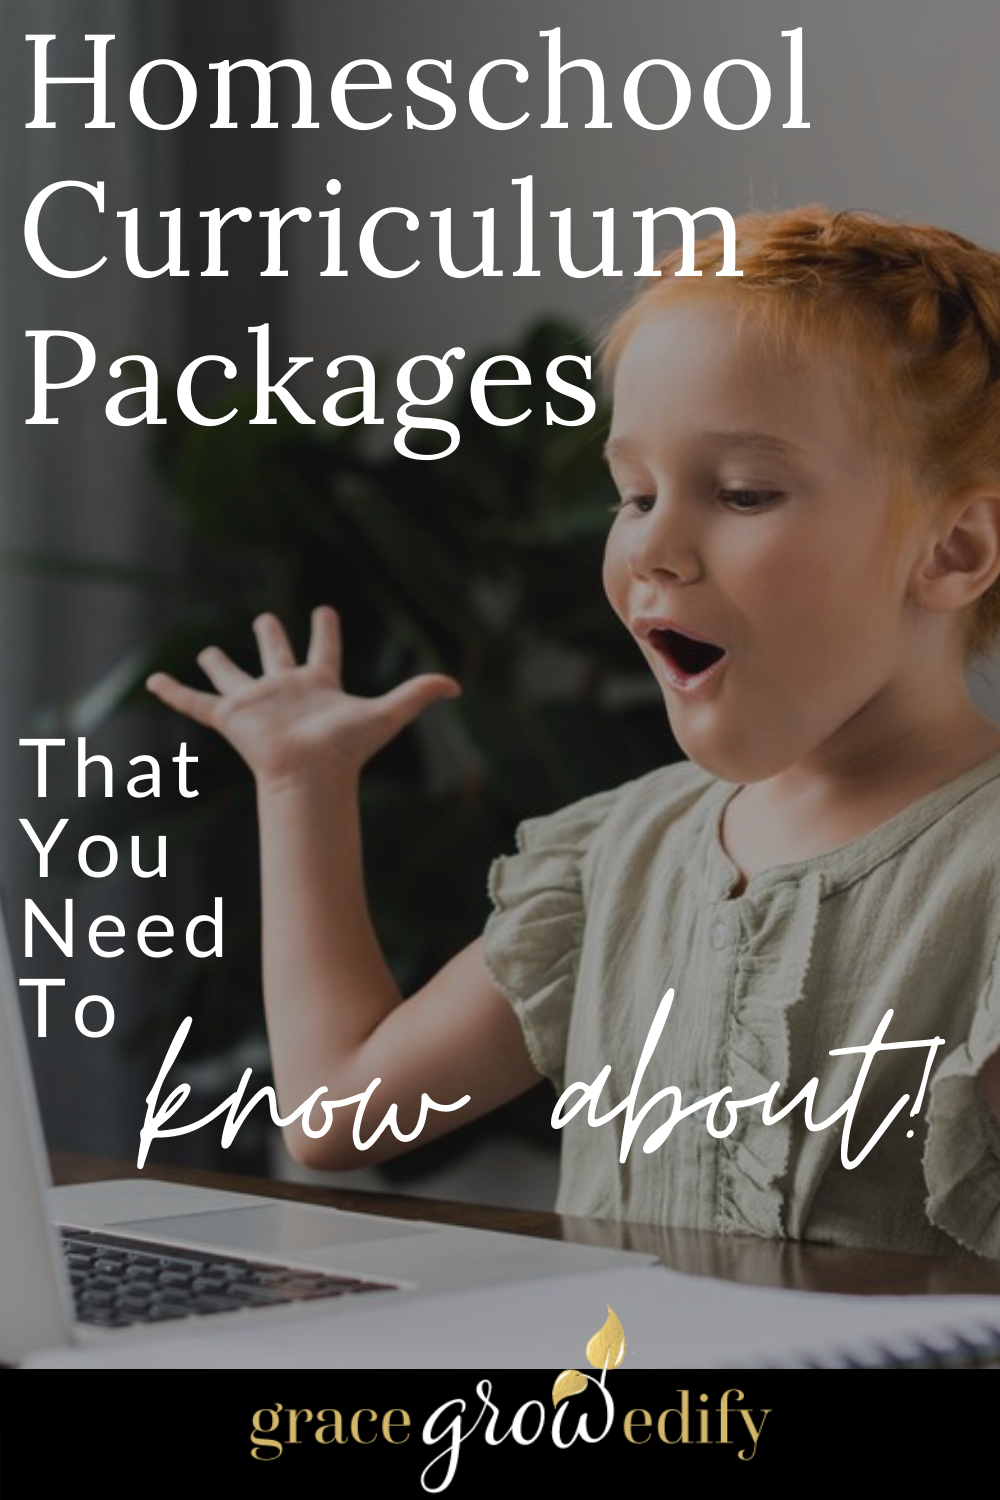 Here is a complete homeschool curriculum package that you may want to know exists! #homeschool #homeschoolcurriculum #homeschooling #curriculum